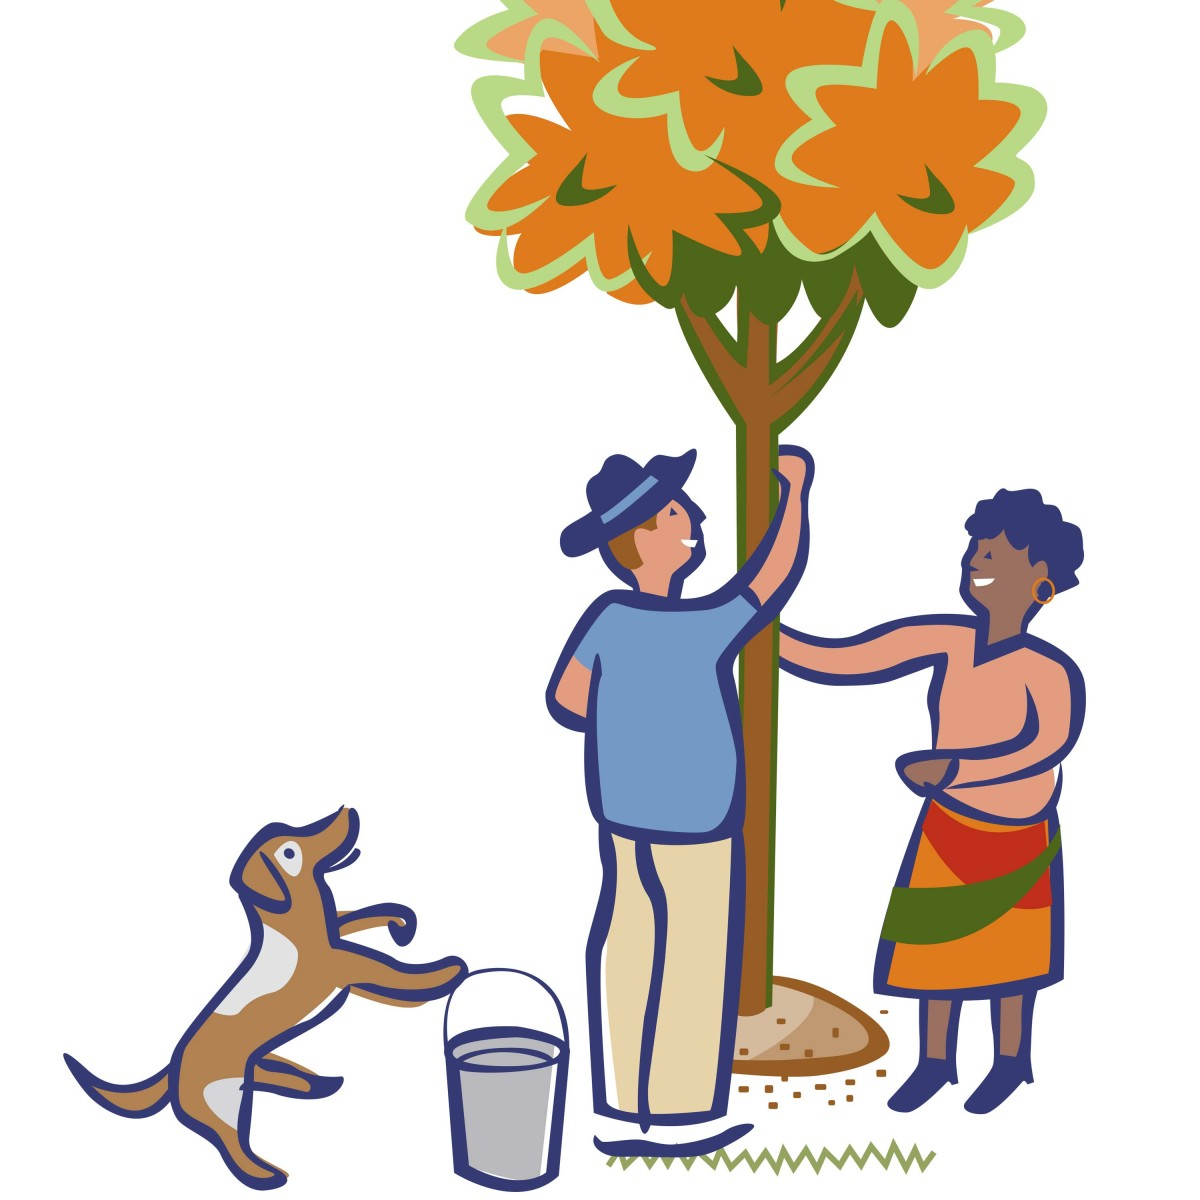 Tree People illustration